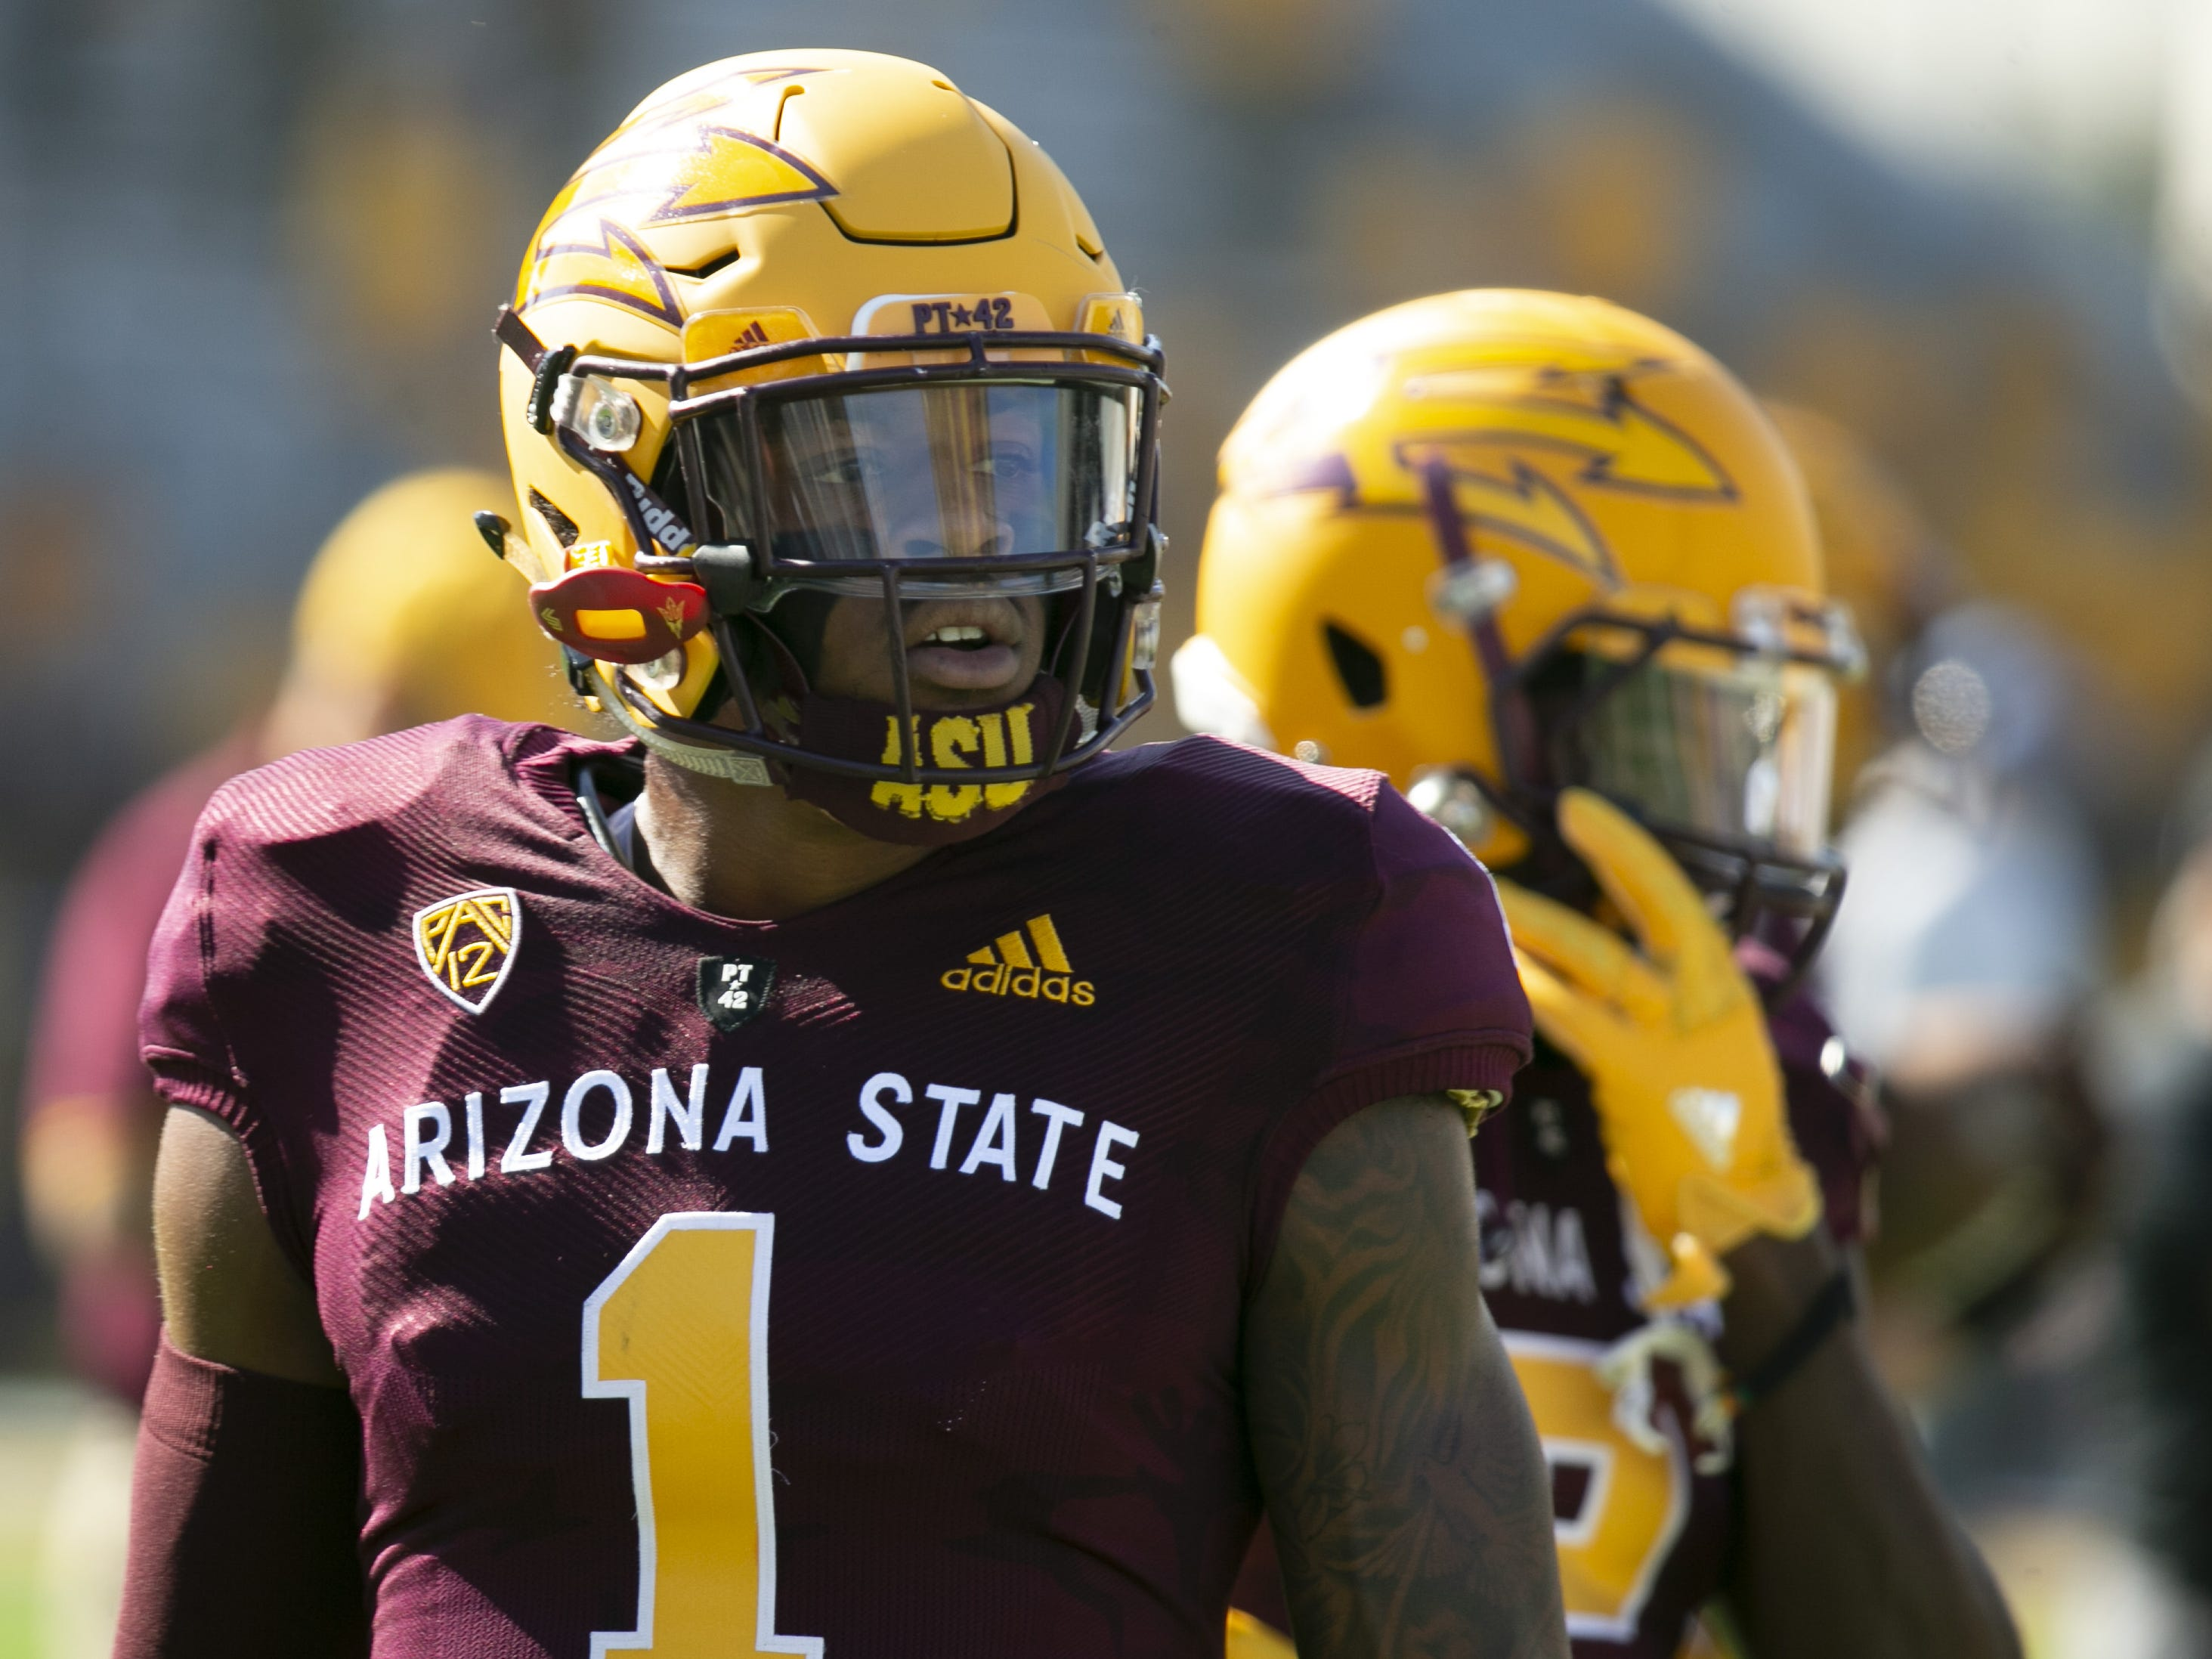 ASU wide receiver N'Keal Harry looks on before the PAC-12 college football game against UCLA at Sun Devil Stadium in Tempe on Saturday, November 10, 2018. This could be Harry's last game at Sun Devil Stadium as he may go to the NFL.